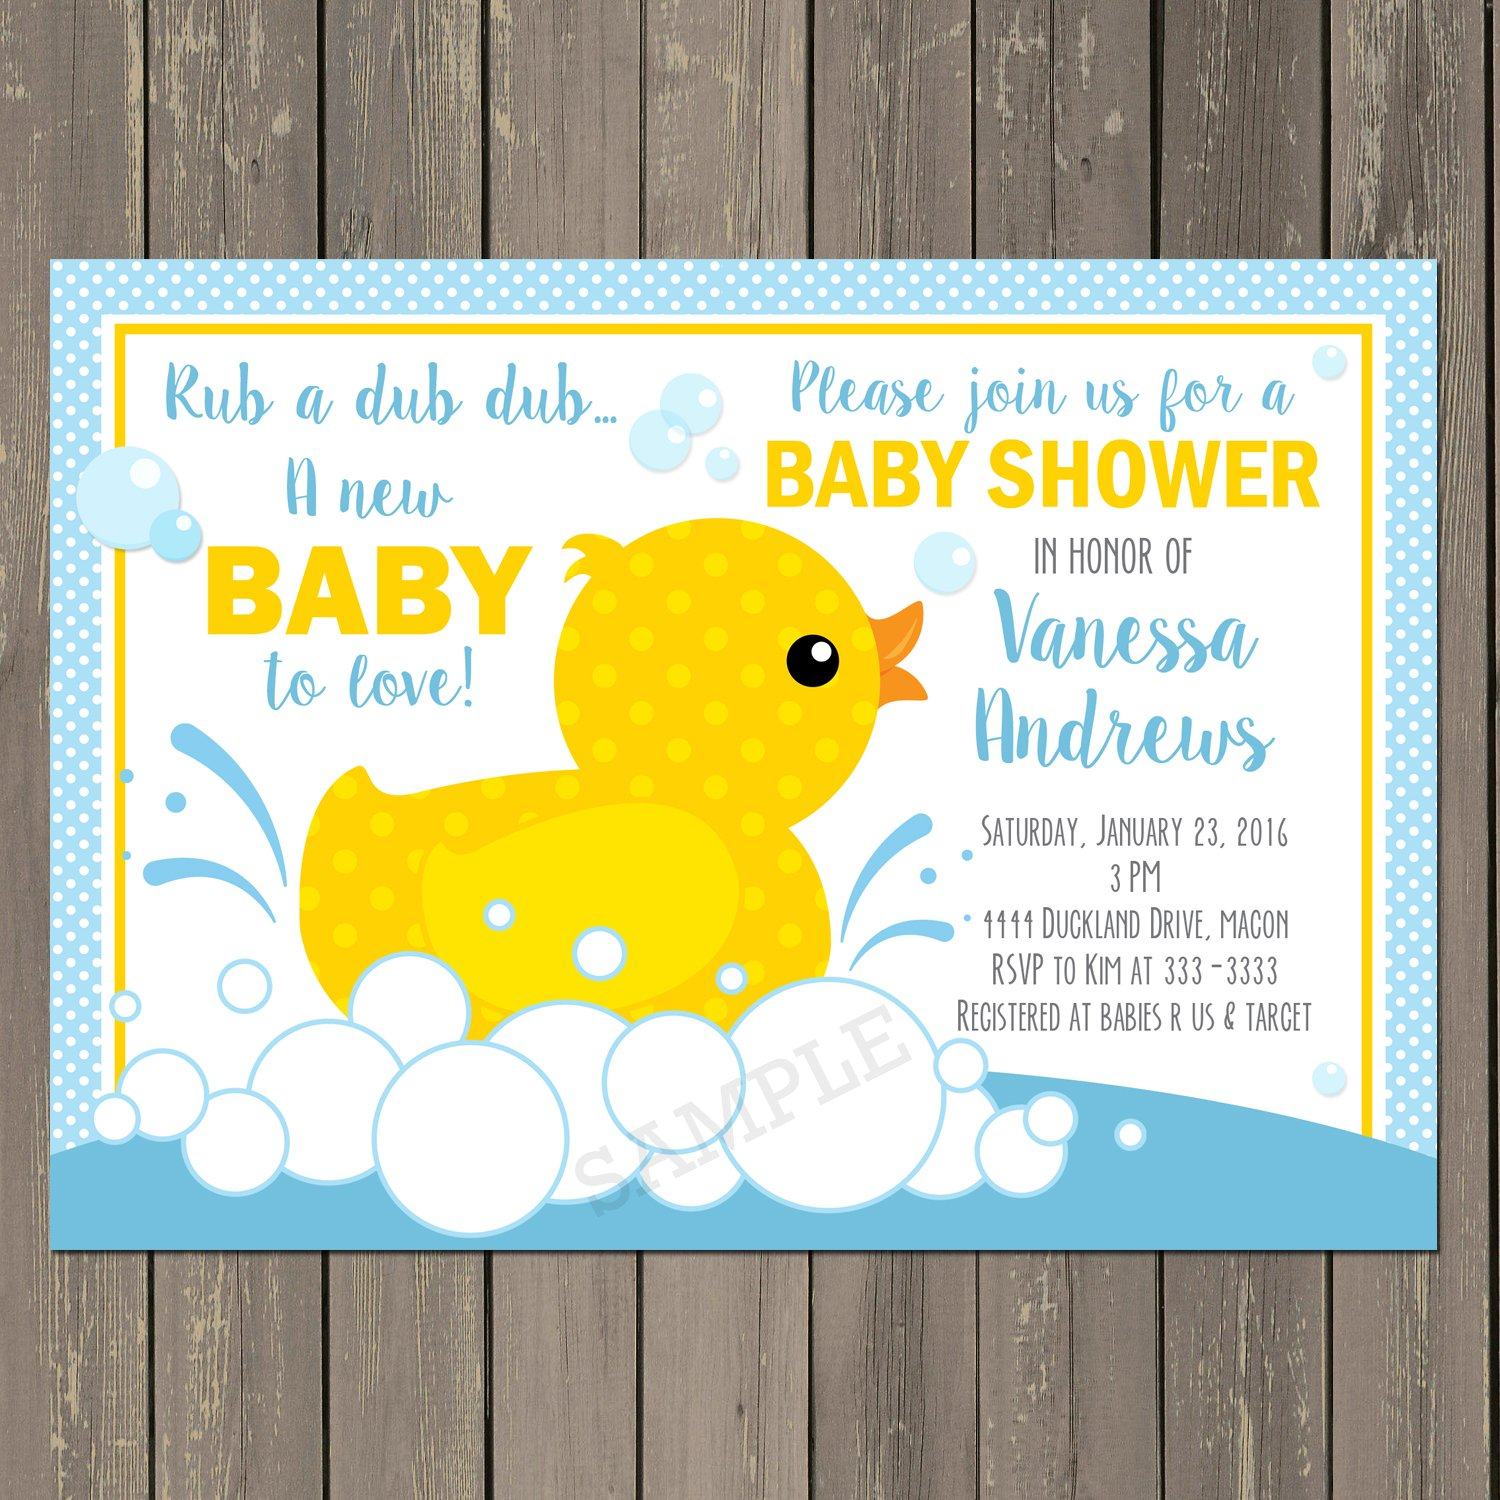 Amazon.com: Rubber Duck Baby Shower Invitation, Rubber Ducky Baby ...